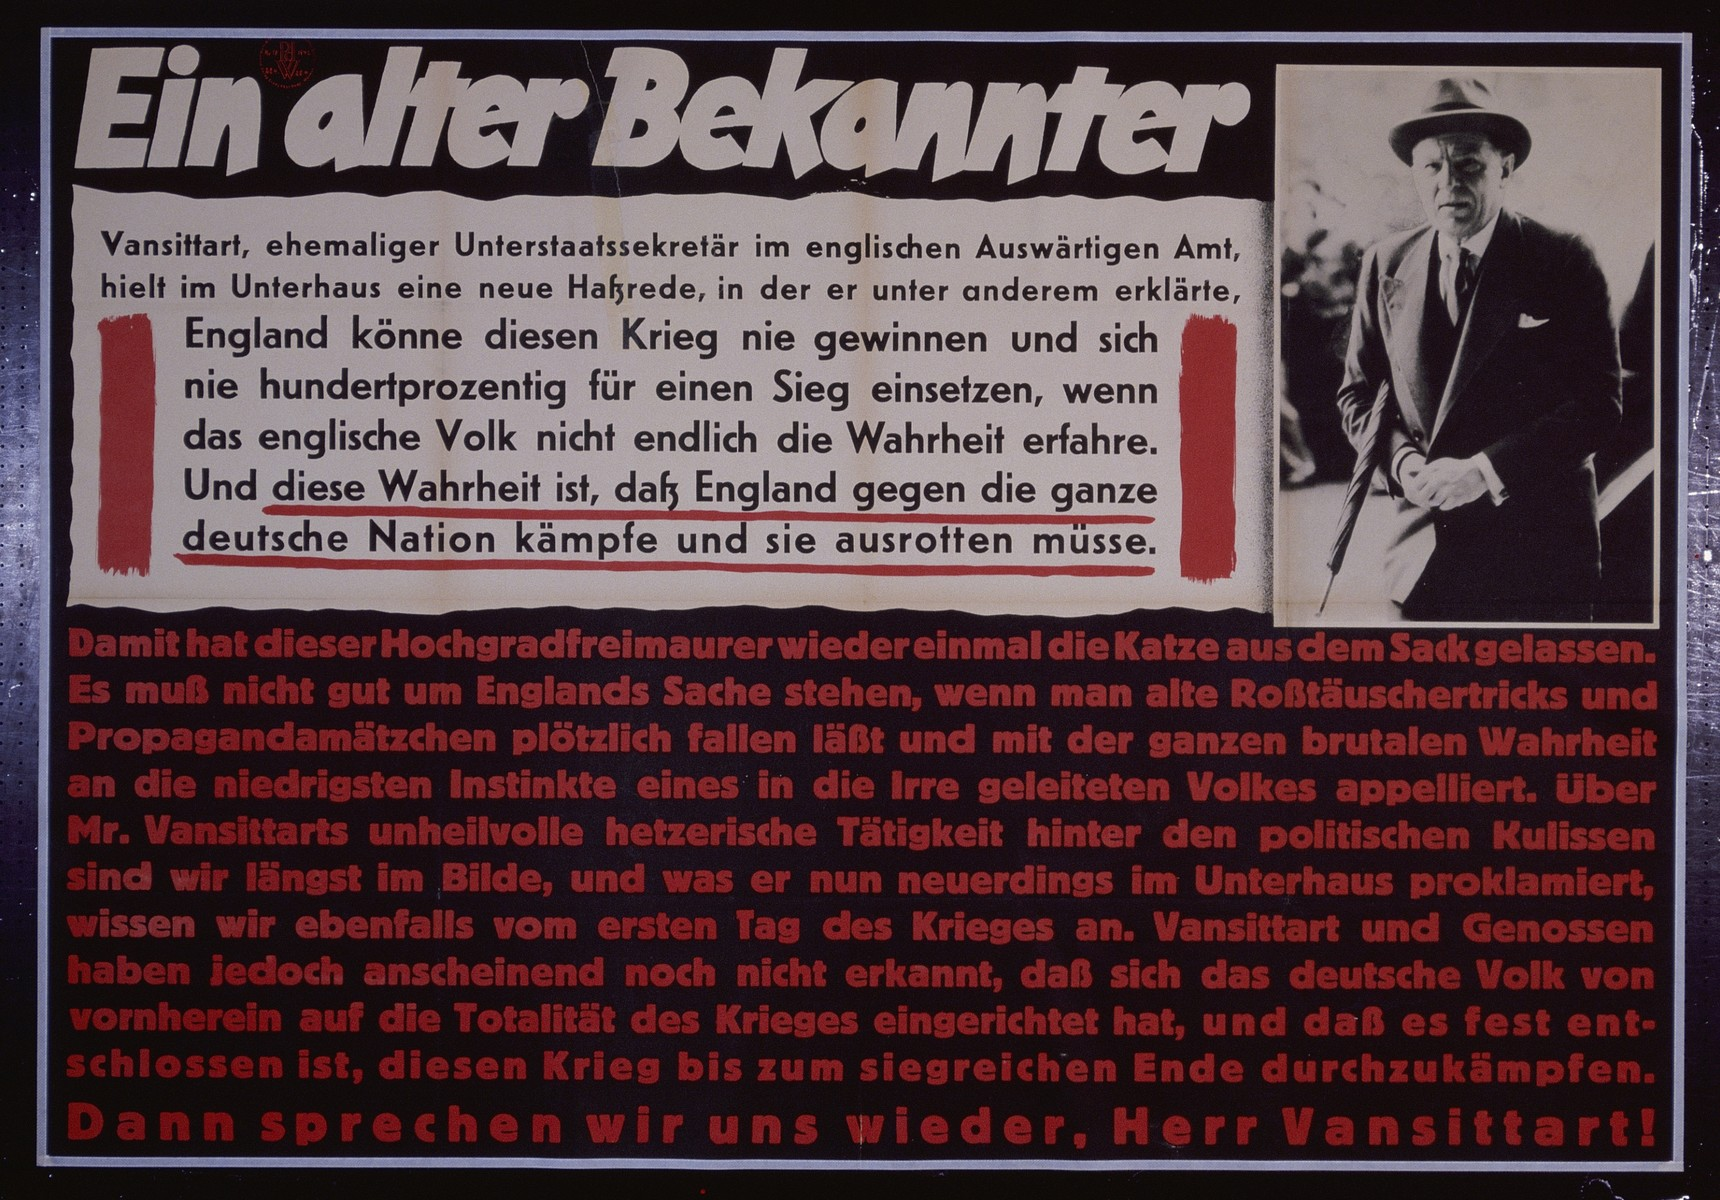 """Nazi propaganda poster entitled, """"Ein alter Bekannter,"""" issued by the """"Parole der Woche,"""" a wall newspaper (Wandzeitung) published by the National Socialist Party propaganda office in Munich."""